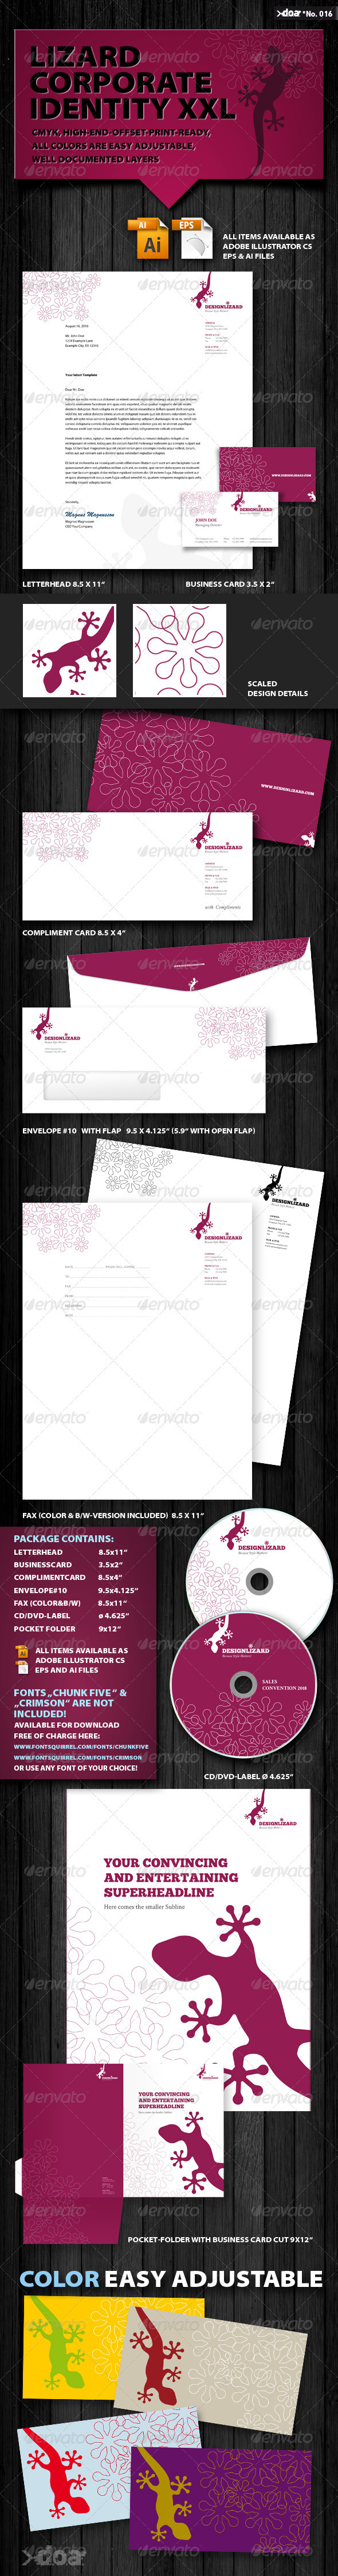 Design Lizard Corporate Identity XXL - Stationery Print Templates